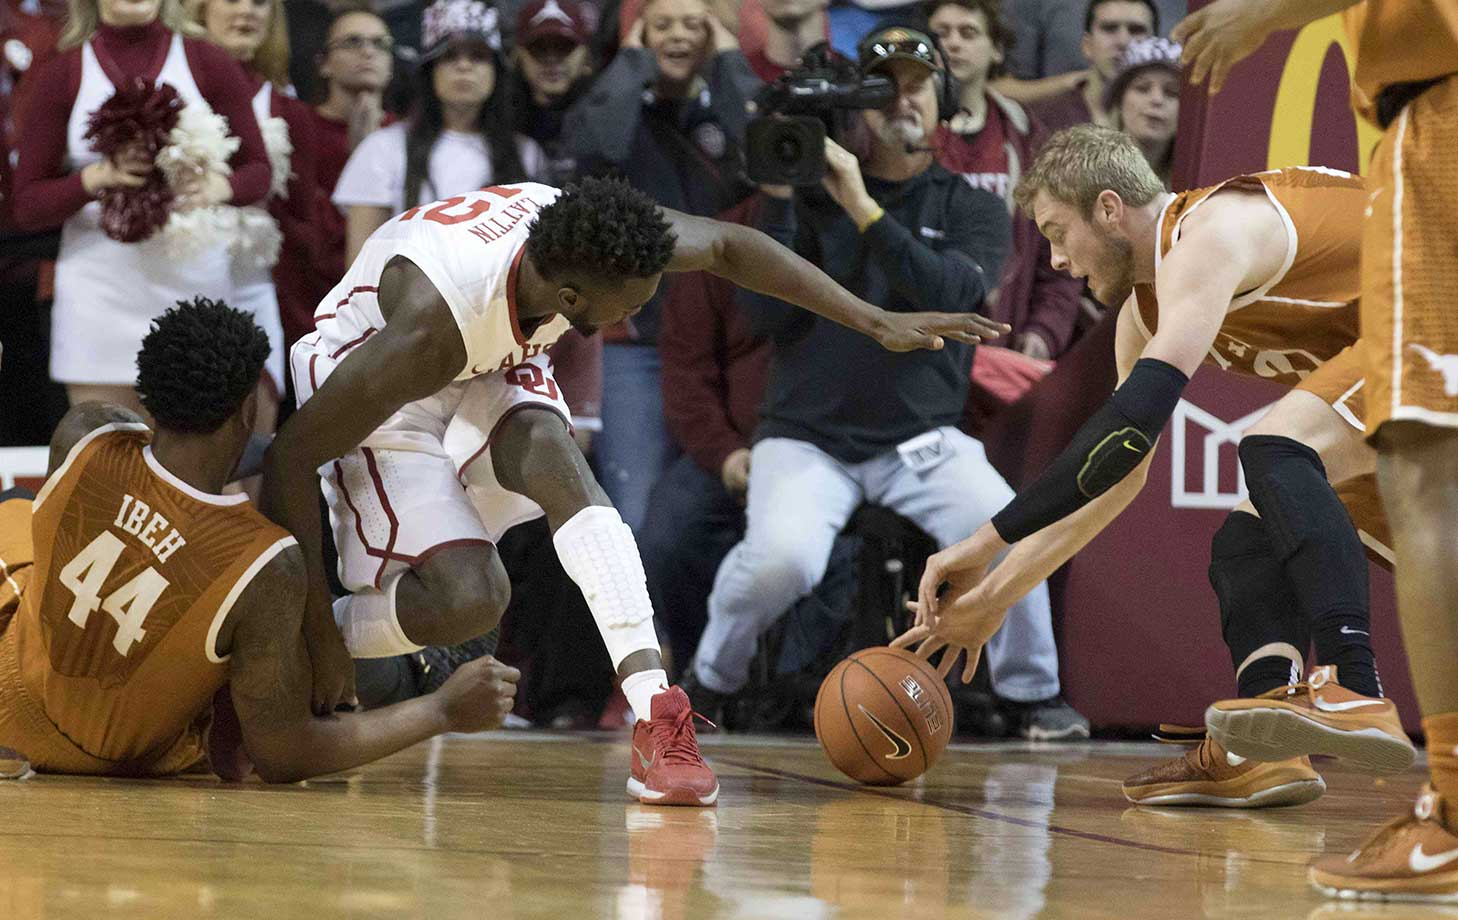 Connor Lammert gains control of the ball ahead of Khadeem Lattin of the Oklahoma Sooners.